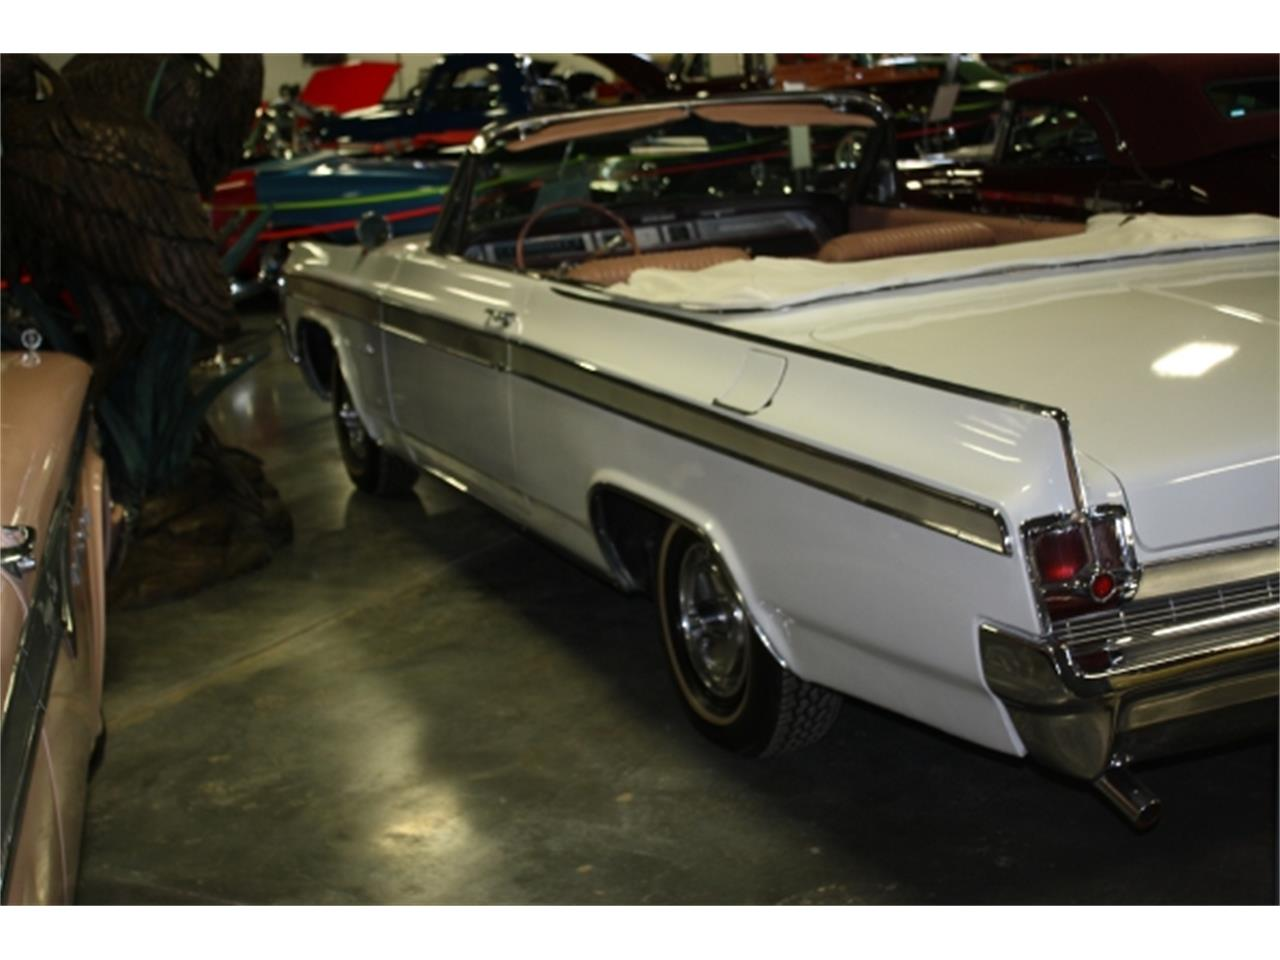 Large Picture of Classic '63 Oldsmobile Starfire located in Branson Missouri - $40,000.00 - DSCB